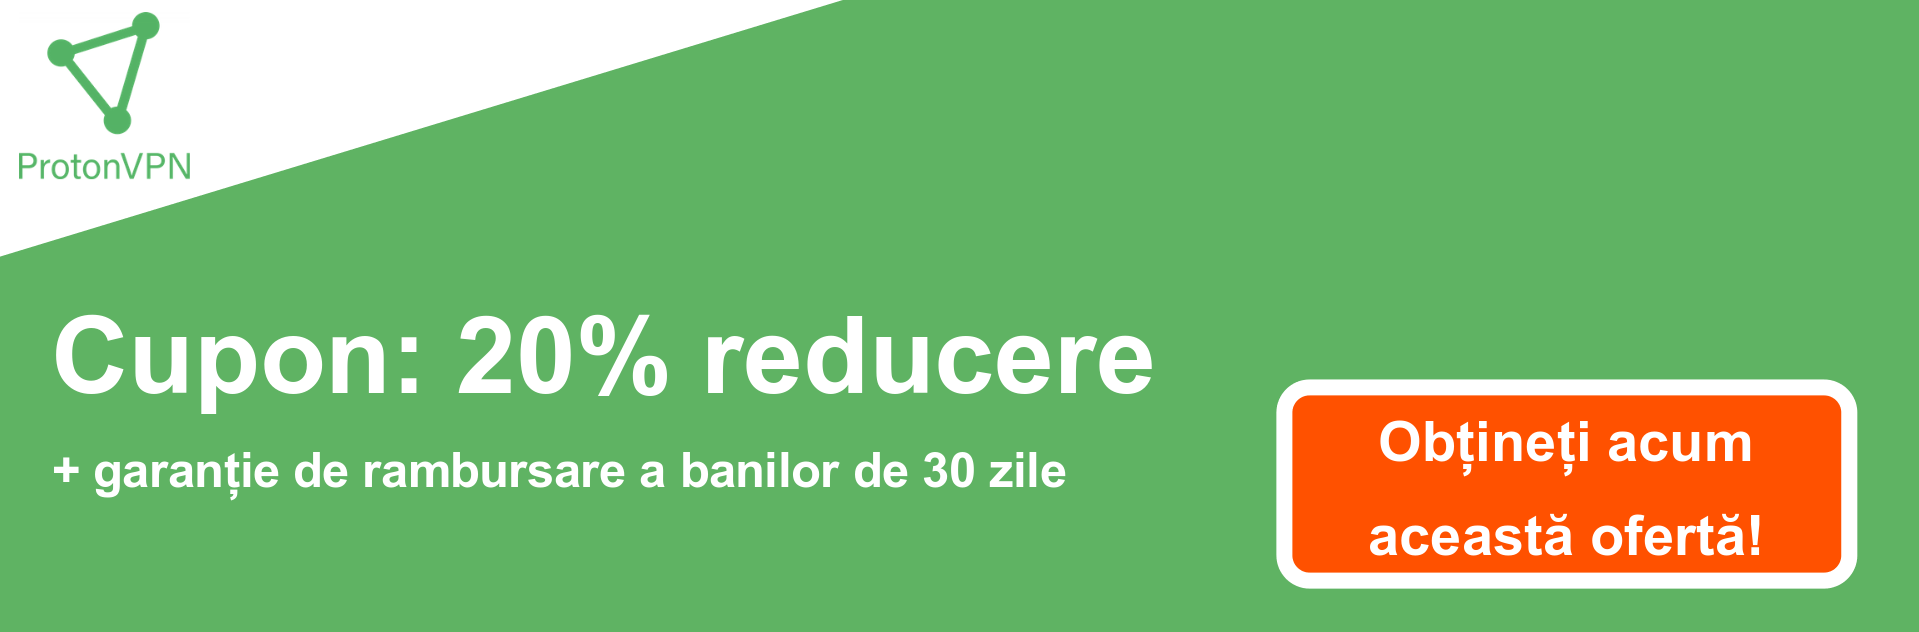 Banner cupon ProtonVPN - 20% reducere